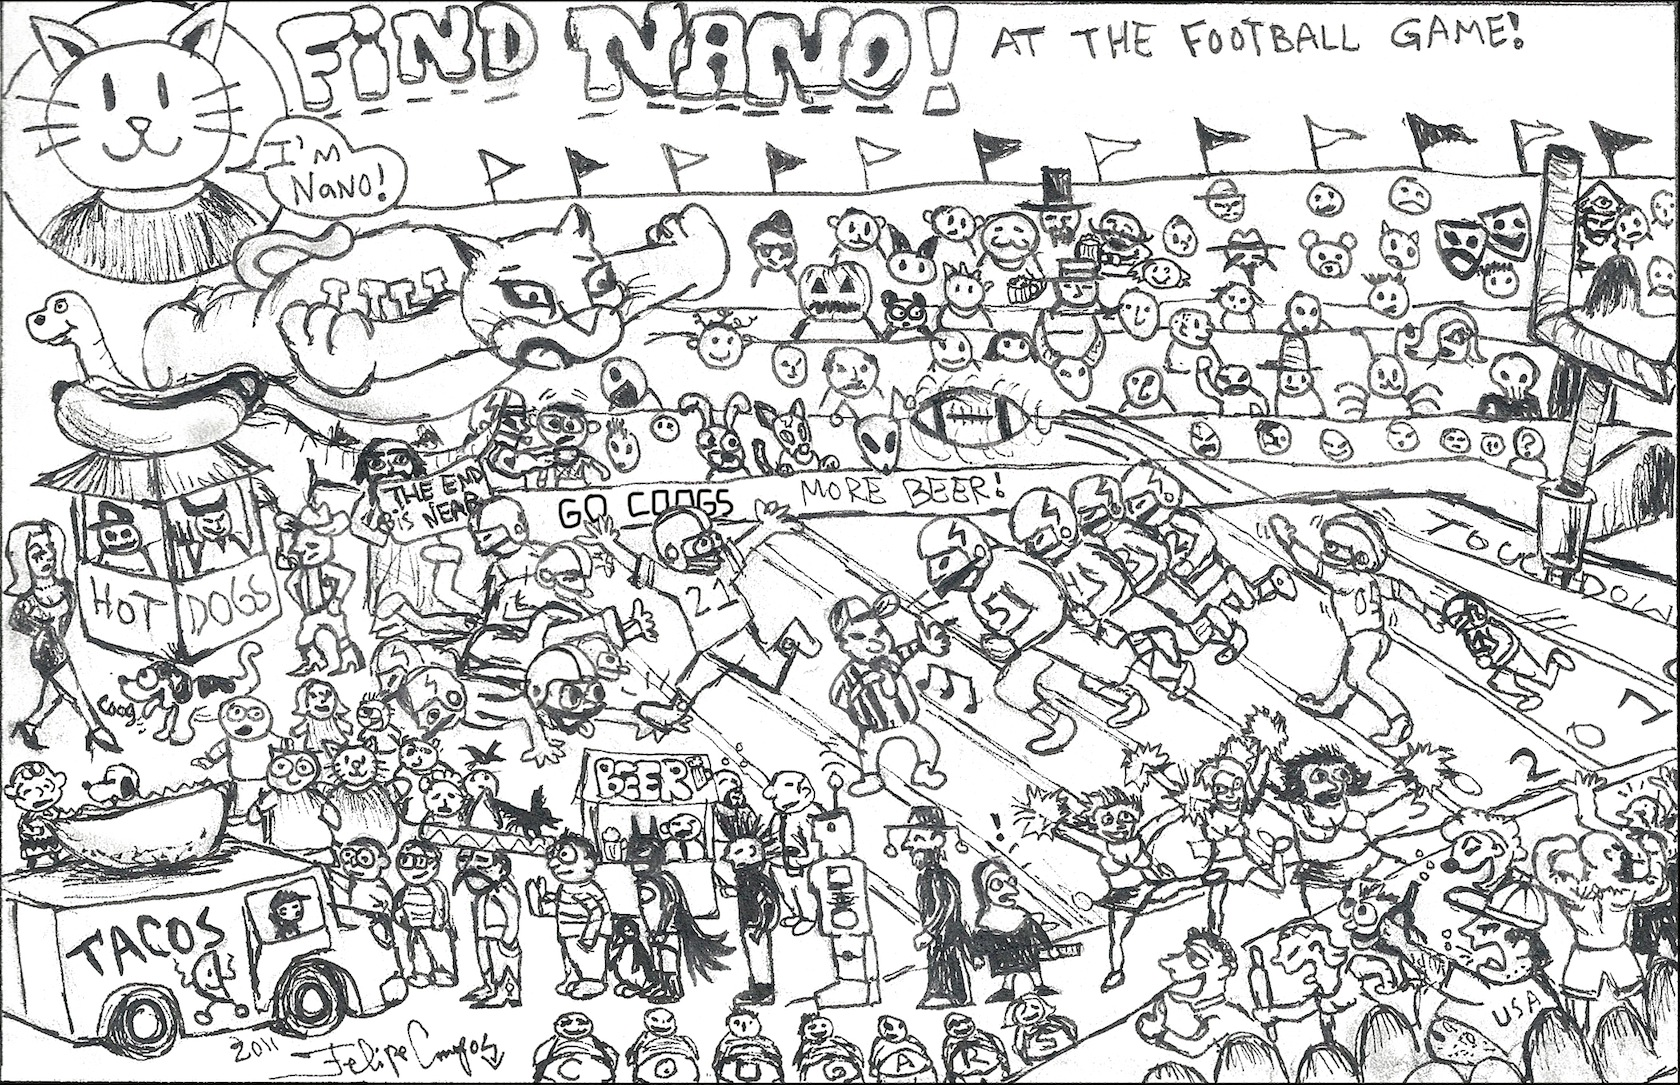 Find Nano at the UH vs. SMU football game! - The Venture